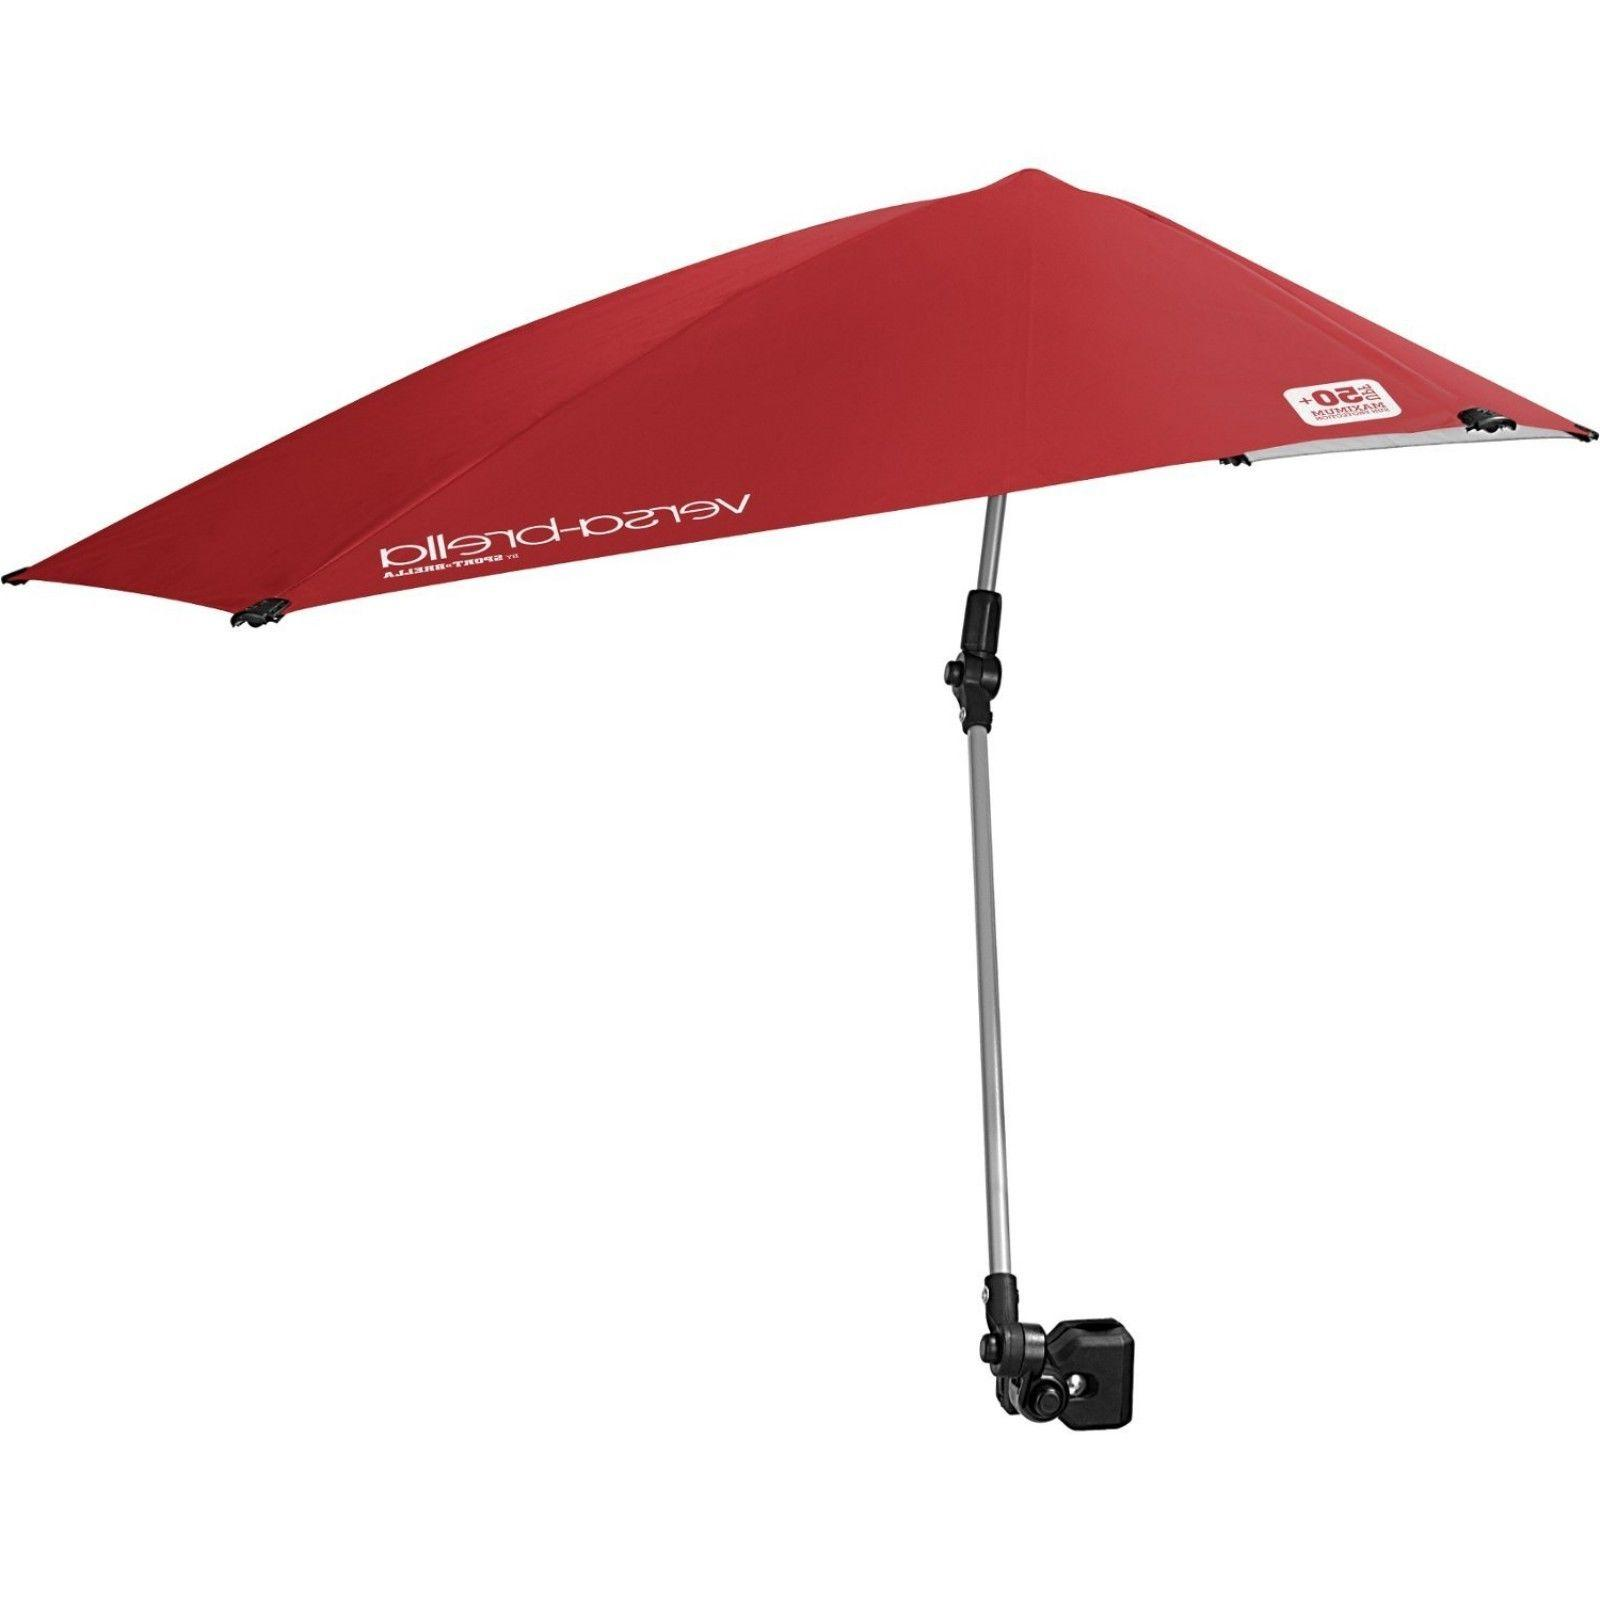 Umbrella With Hiking Accessories